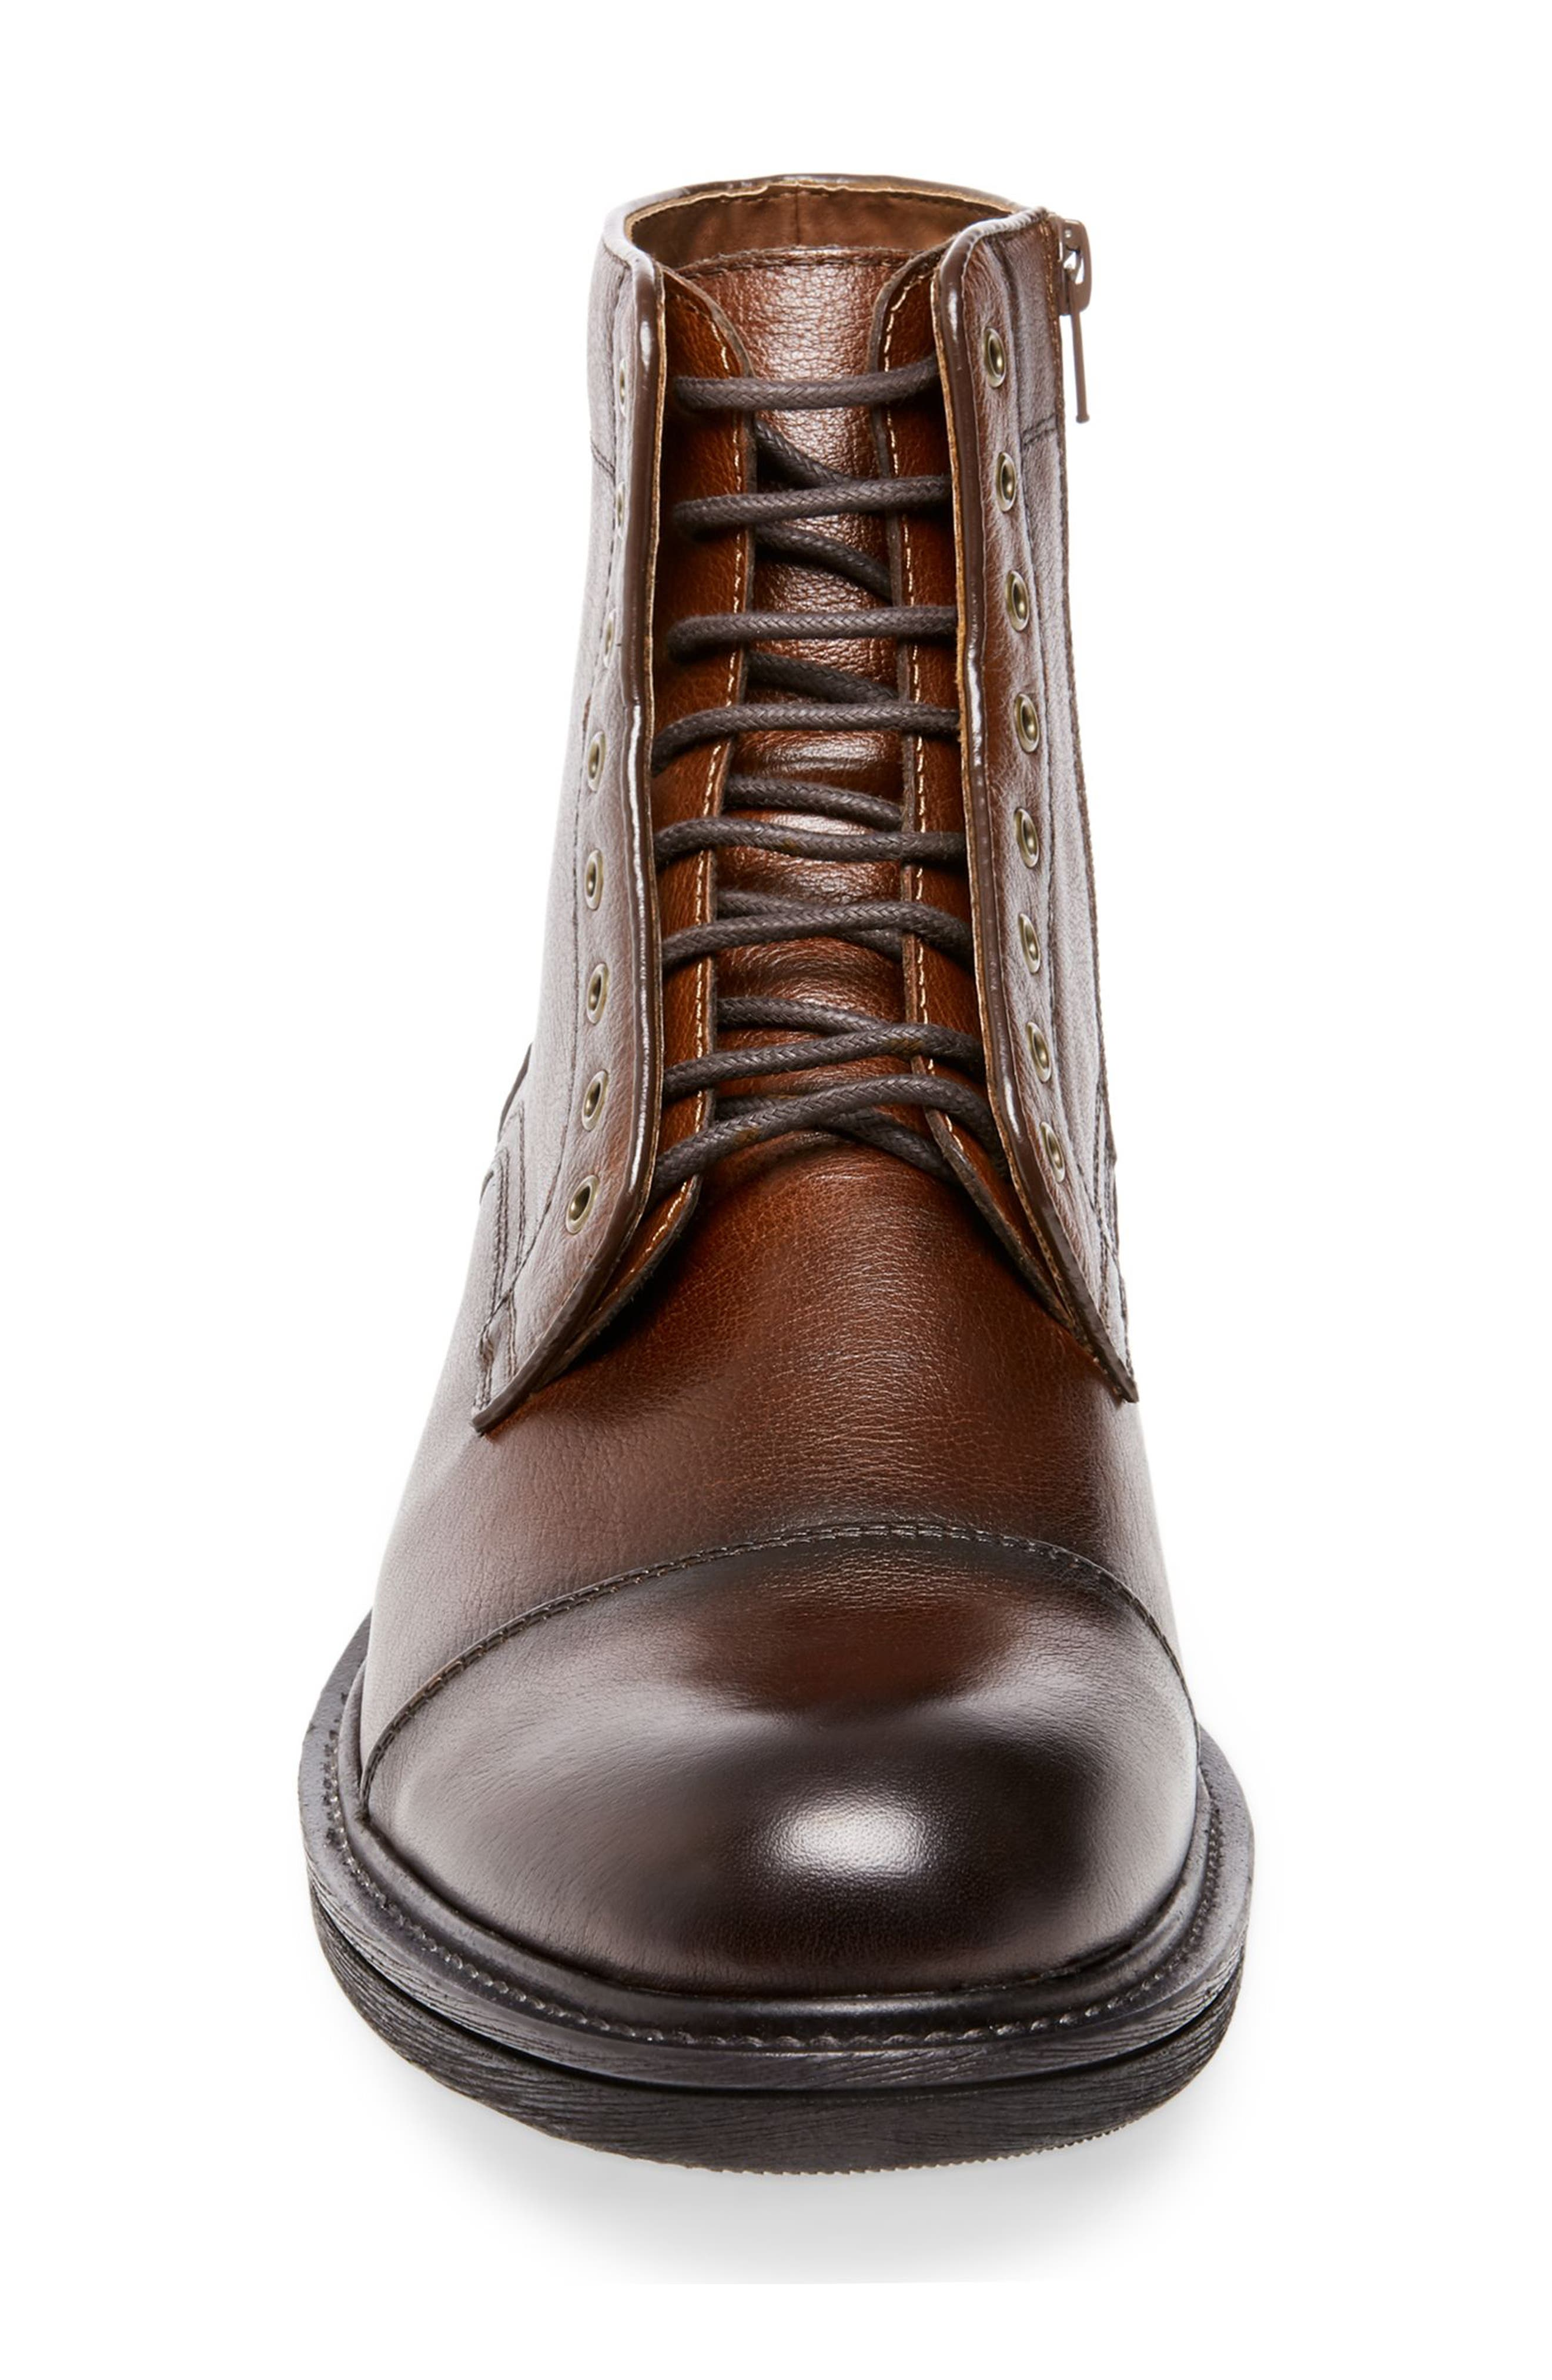 Chariot Boot,                             Alternate thumbnail 3, color,                             COGNAC LEATHER